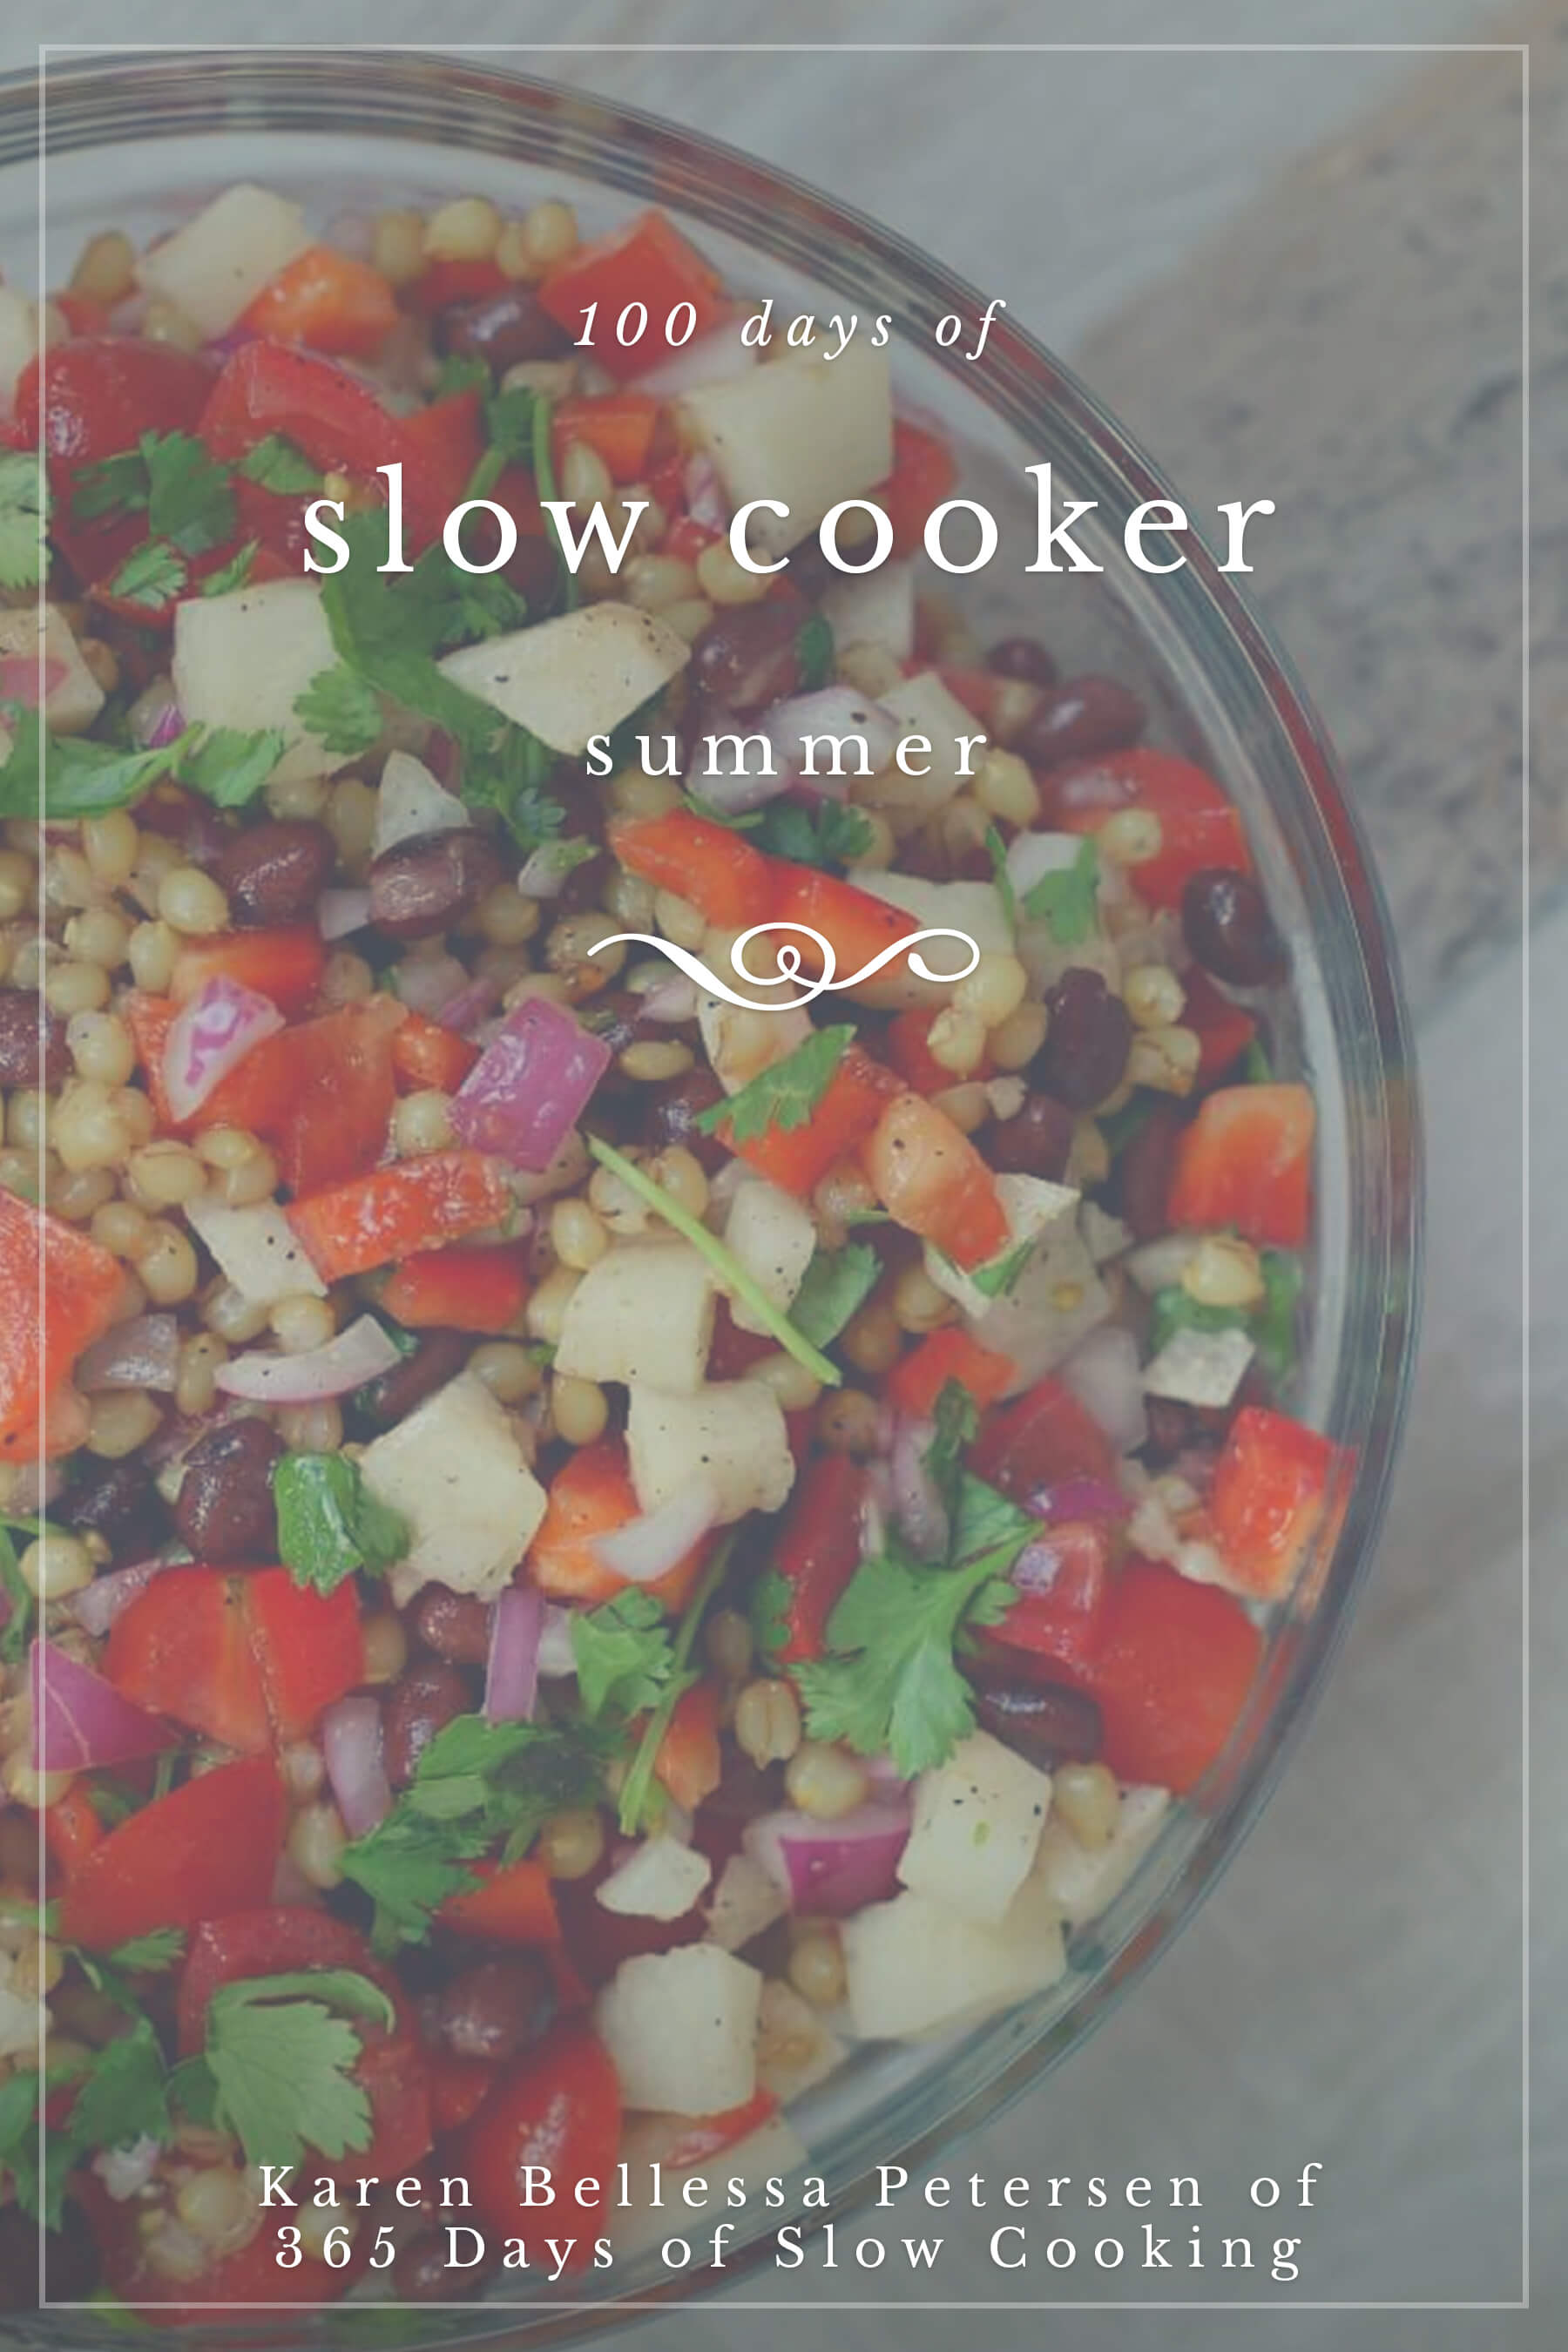 slow cooker summer recipes that are easy and delicious